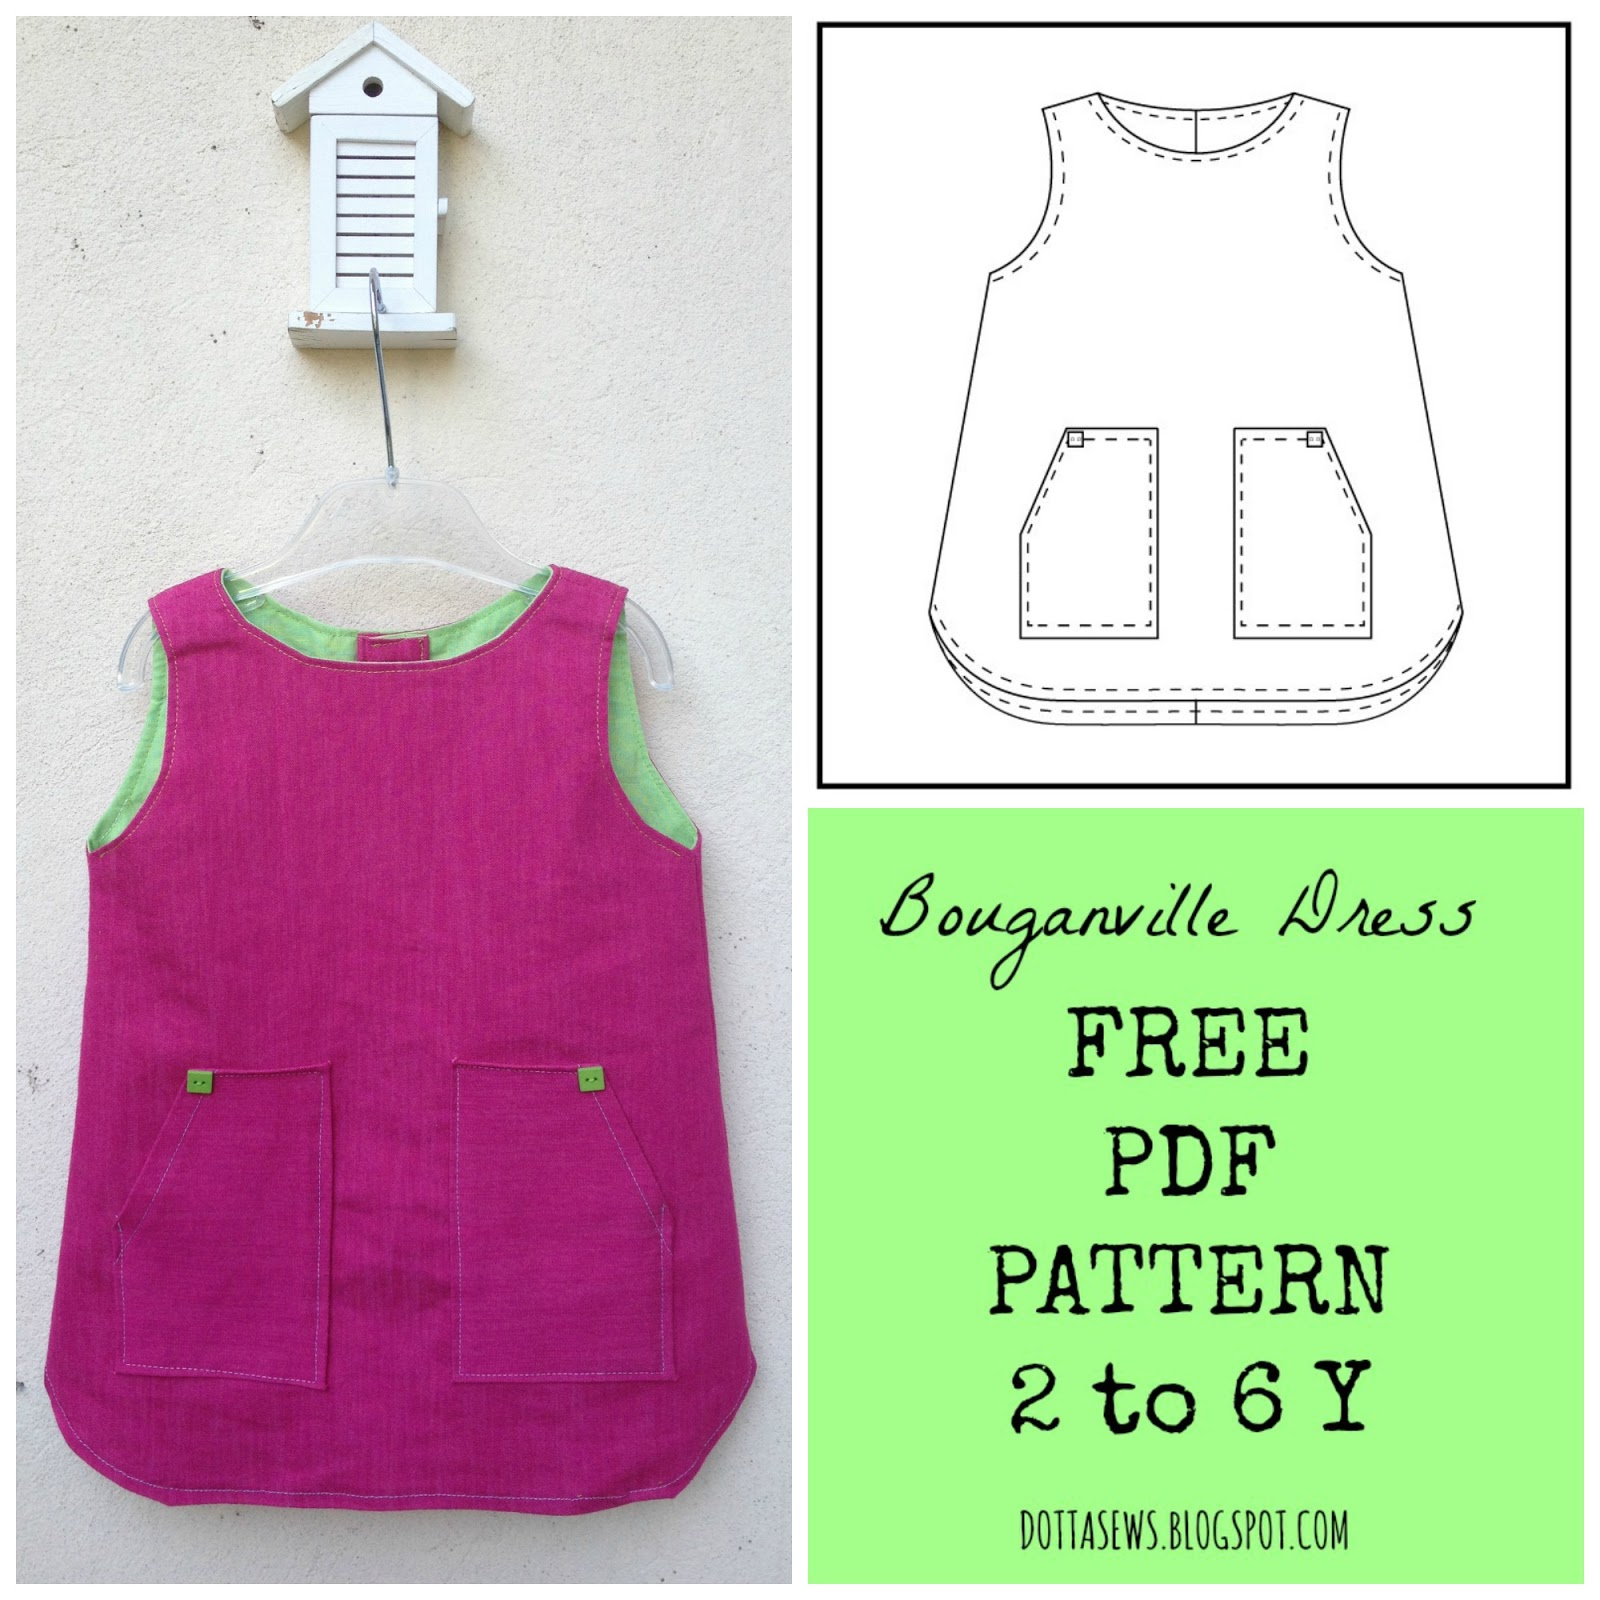 Bouganville dress pdf pattern